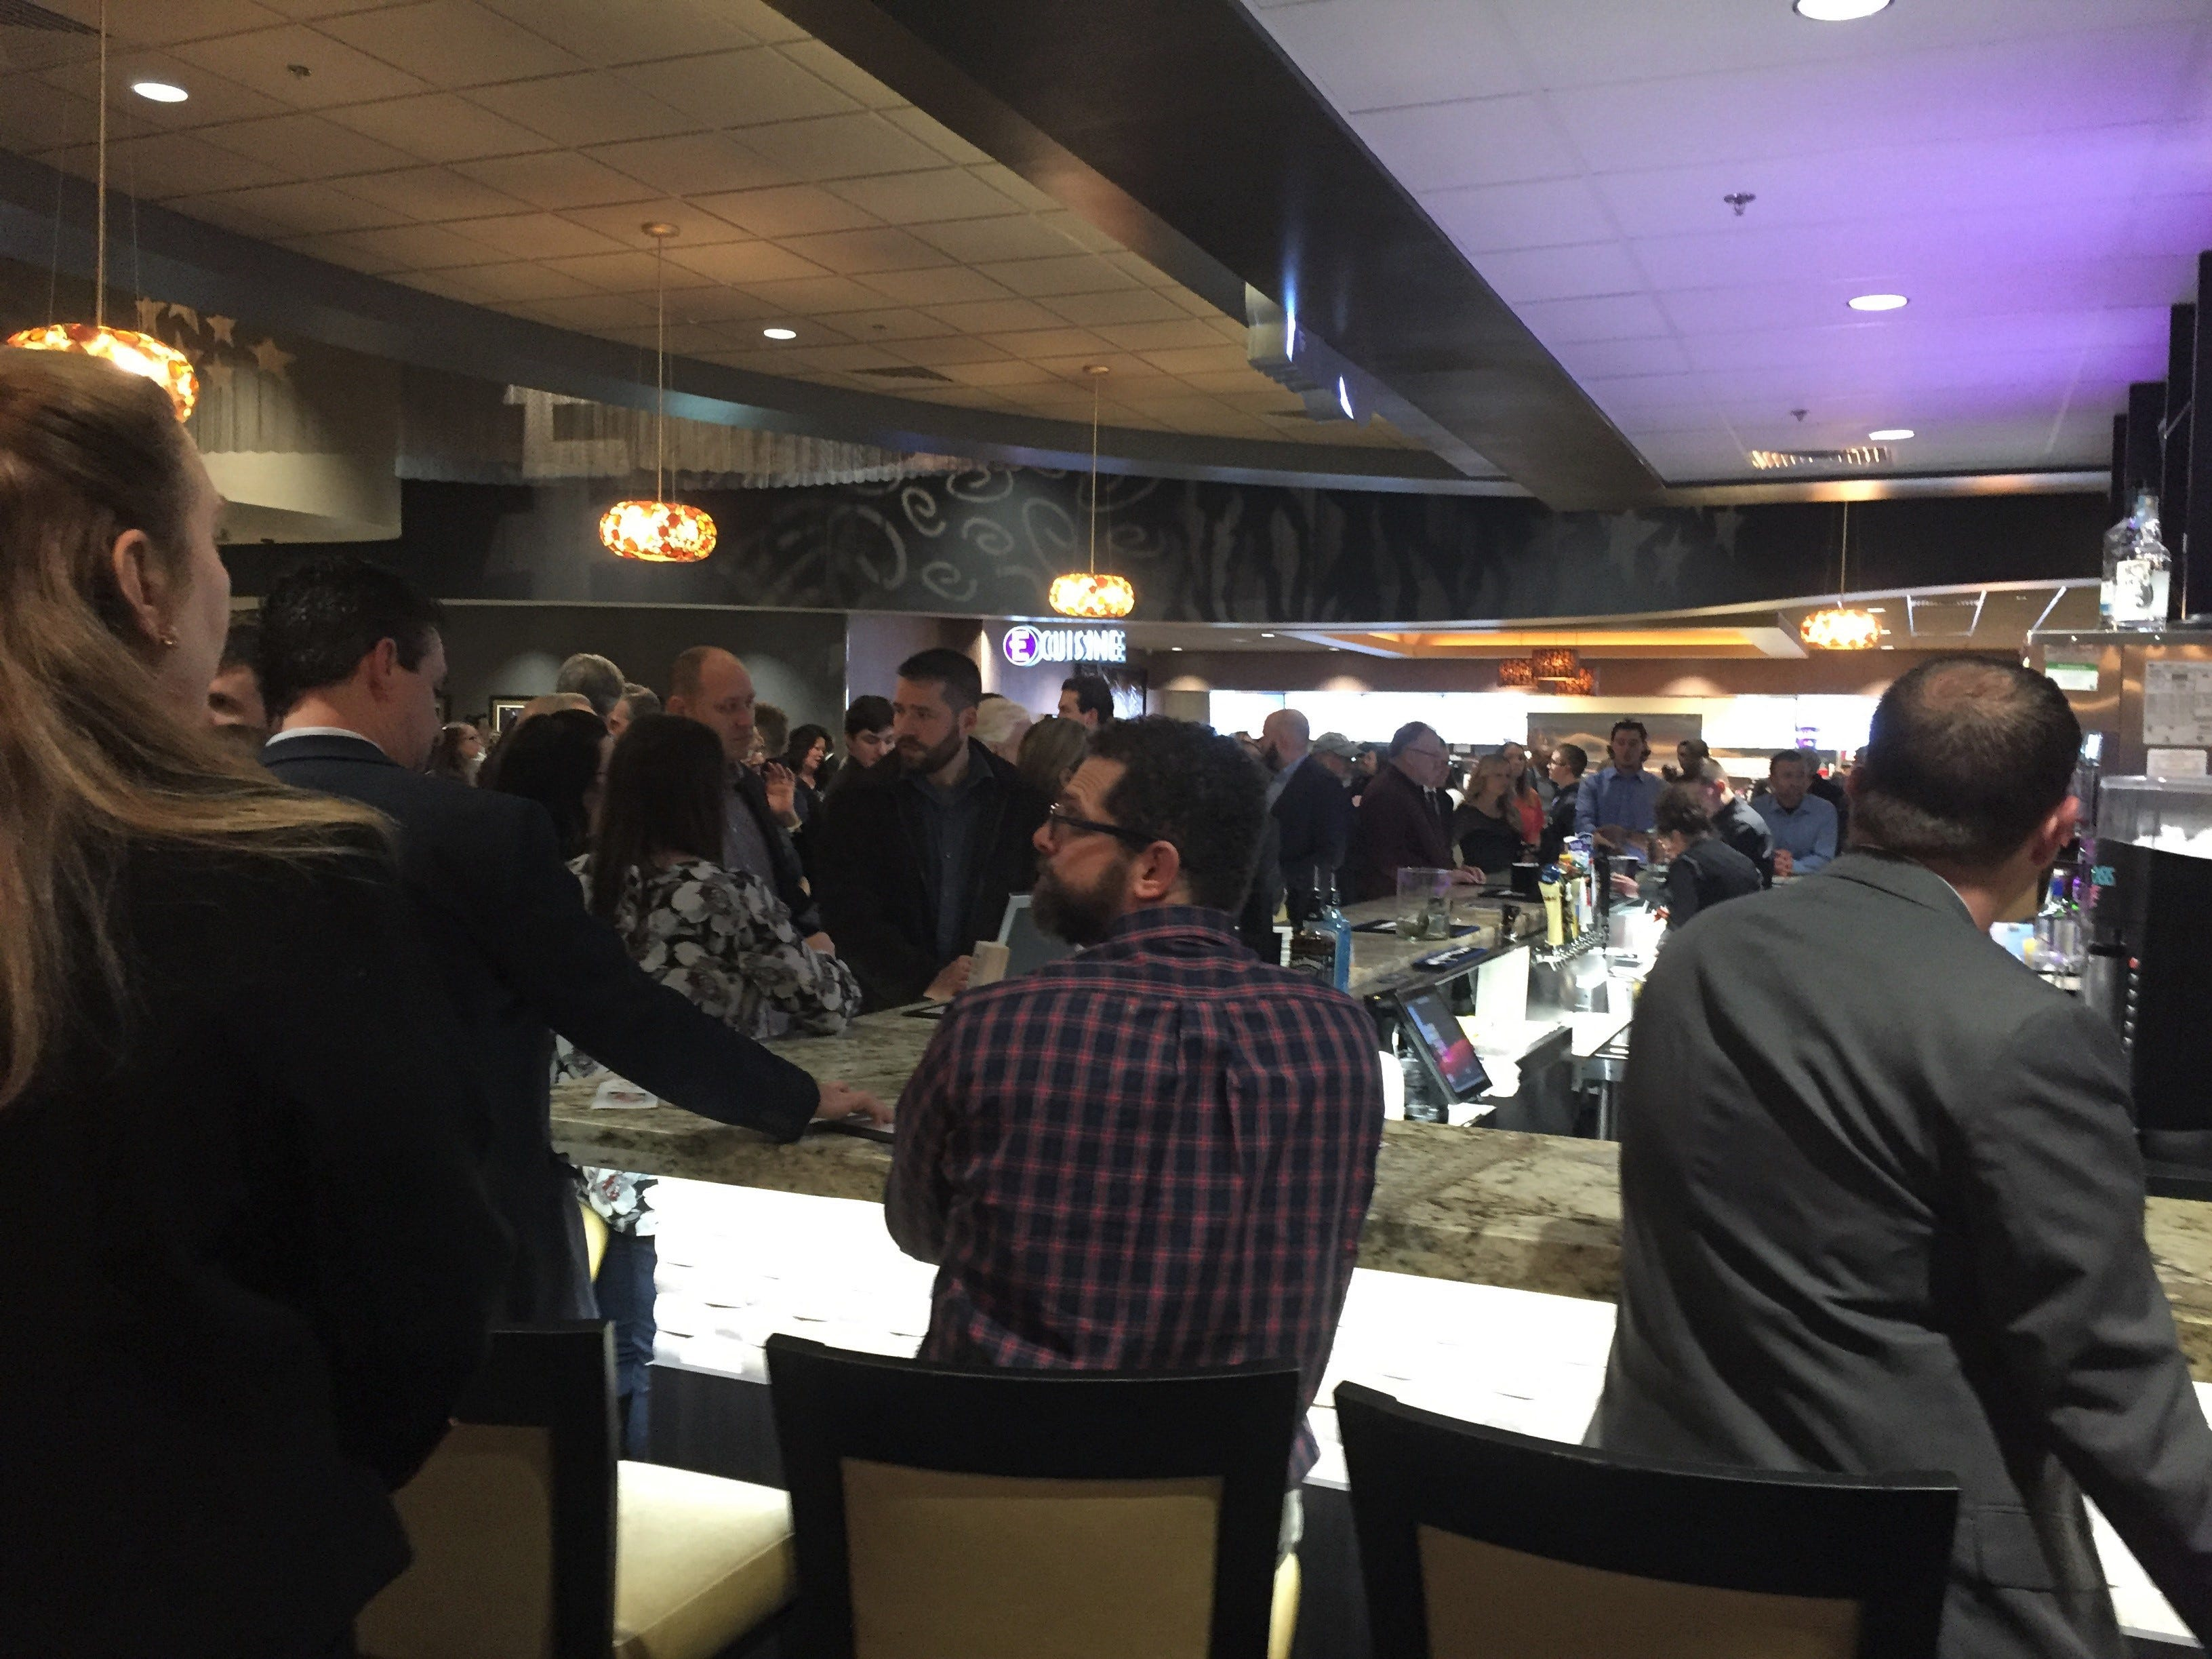 A crowd gathers at the bar at Emagine Entertainment's new movie theater Emagine Hartland at a Friday, Dec. 14, 2018 theater opening charity event.